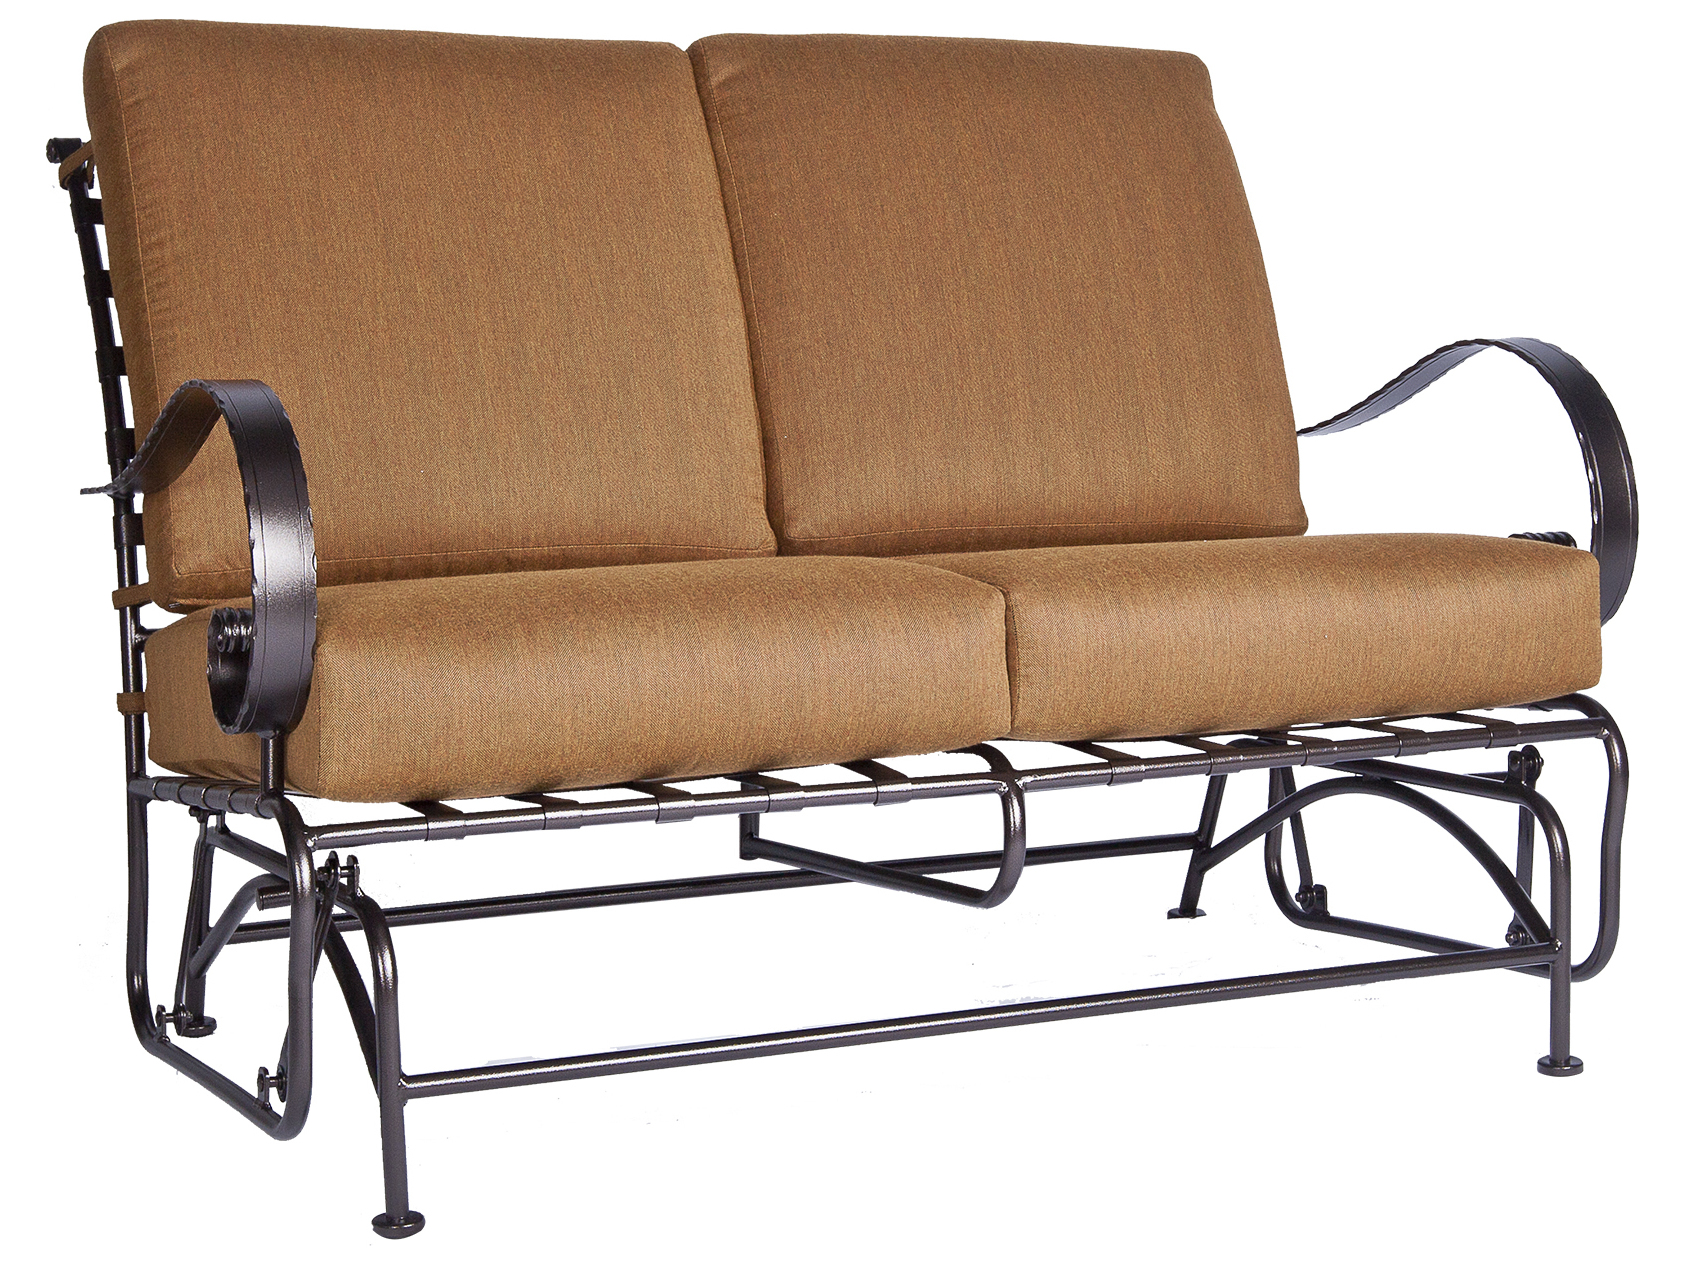 Ow Lee Classico Wide Arms Wrought Iron Love Seat Glider 956 2gw